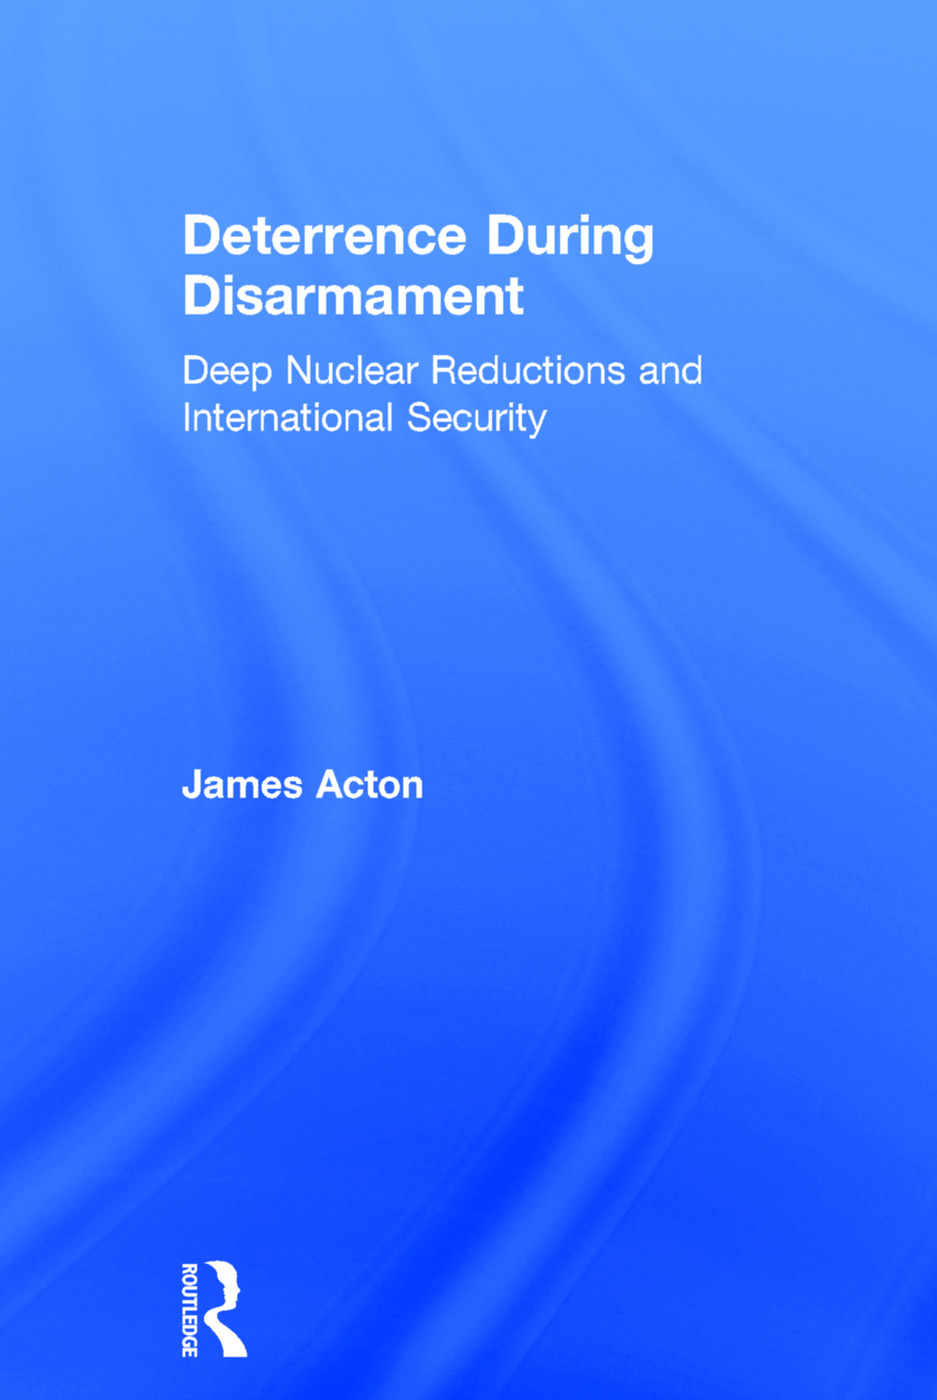 Deterrence During Disarmament: Deep Nuclear Reductions and International Security (Paperback) book cover